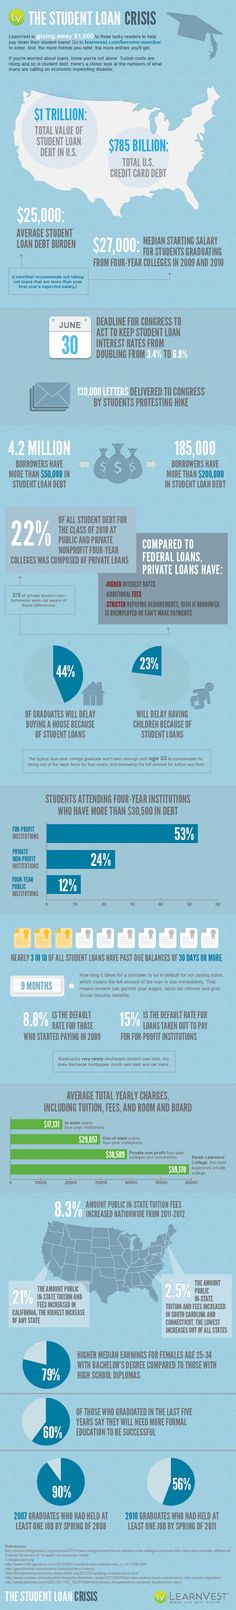 LearnVest Student Loan Crisis Infographic....nice to know it's not just me and my Masters Degree